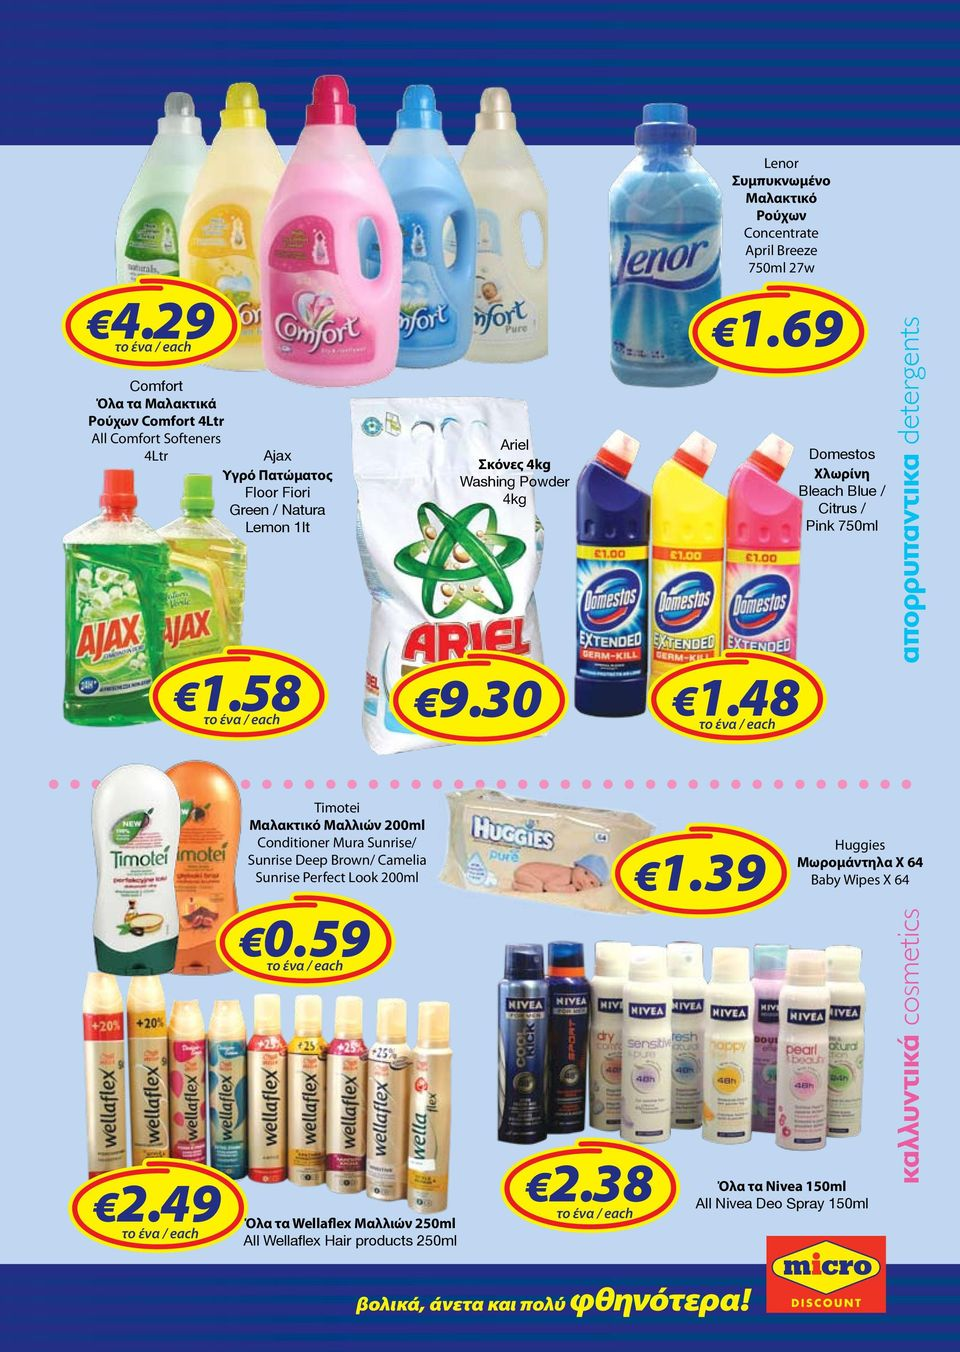 49 Όλα τα Wellaflex Mαλλιών 250ml All Wellaflex Hair products 250ml Ariel Σκόνες 4kg Washing Powder 4kg 9.